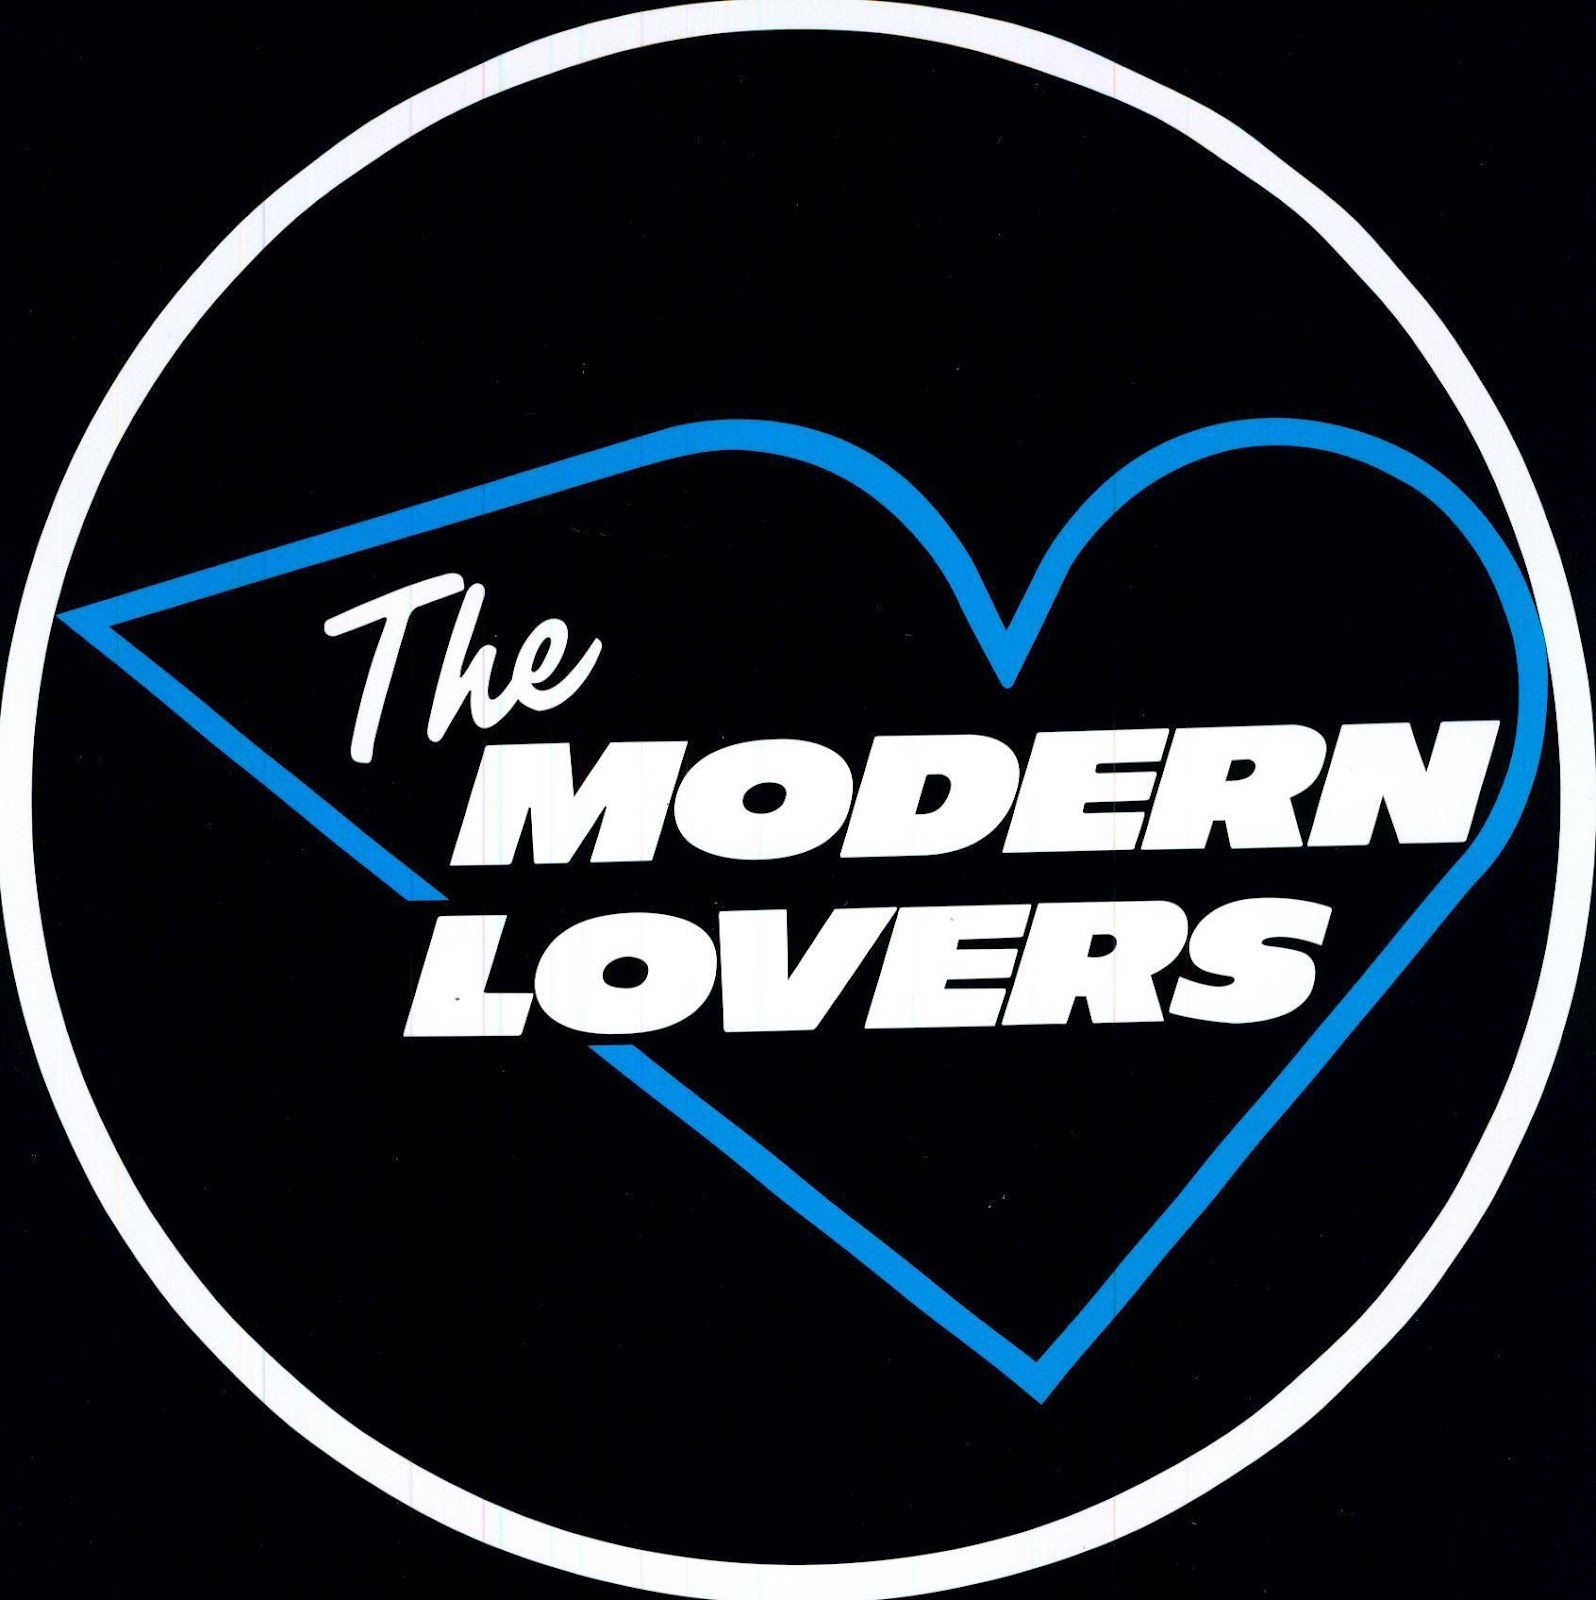 The Modern Lovers The Modern Lovers 1976 The Modern Lovers Jonathan Richman I Love You Means